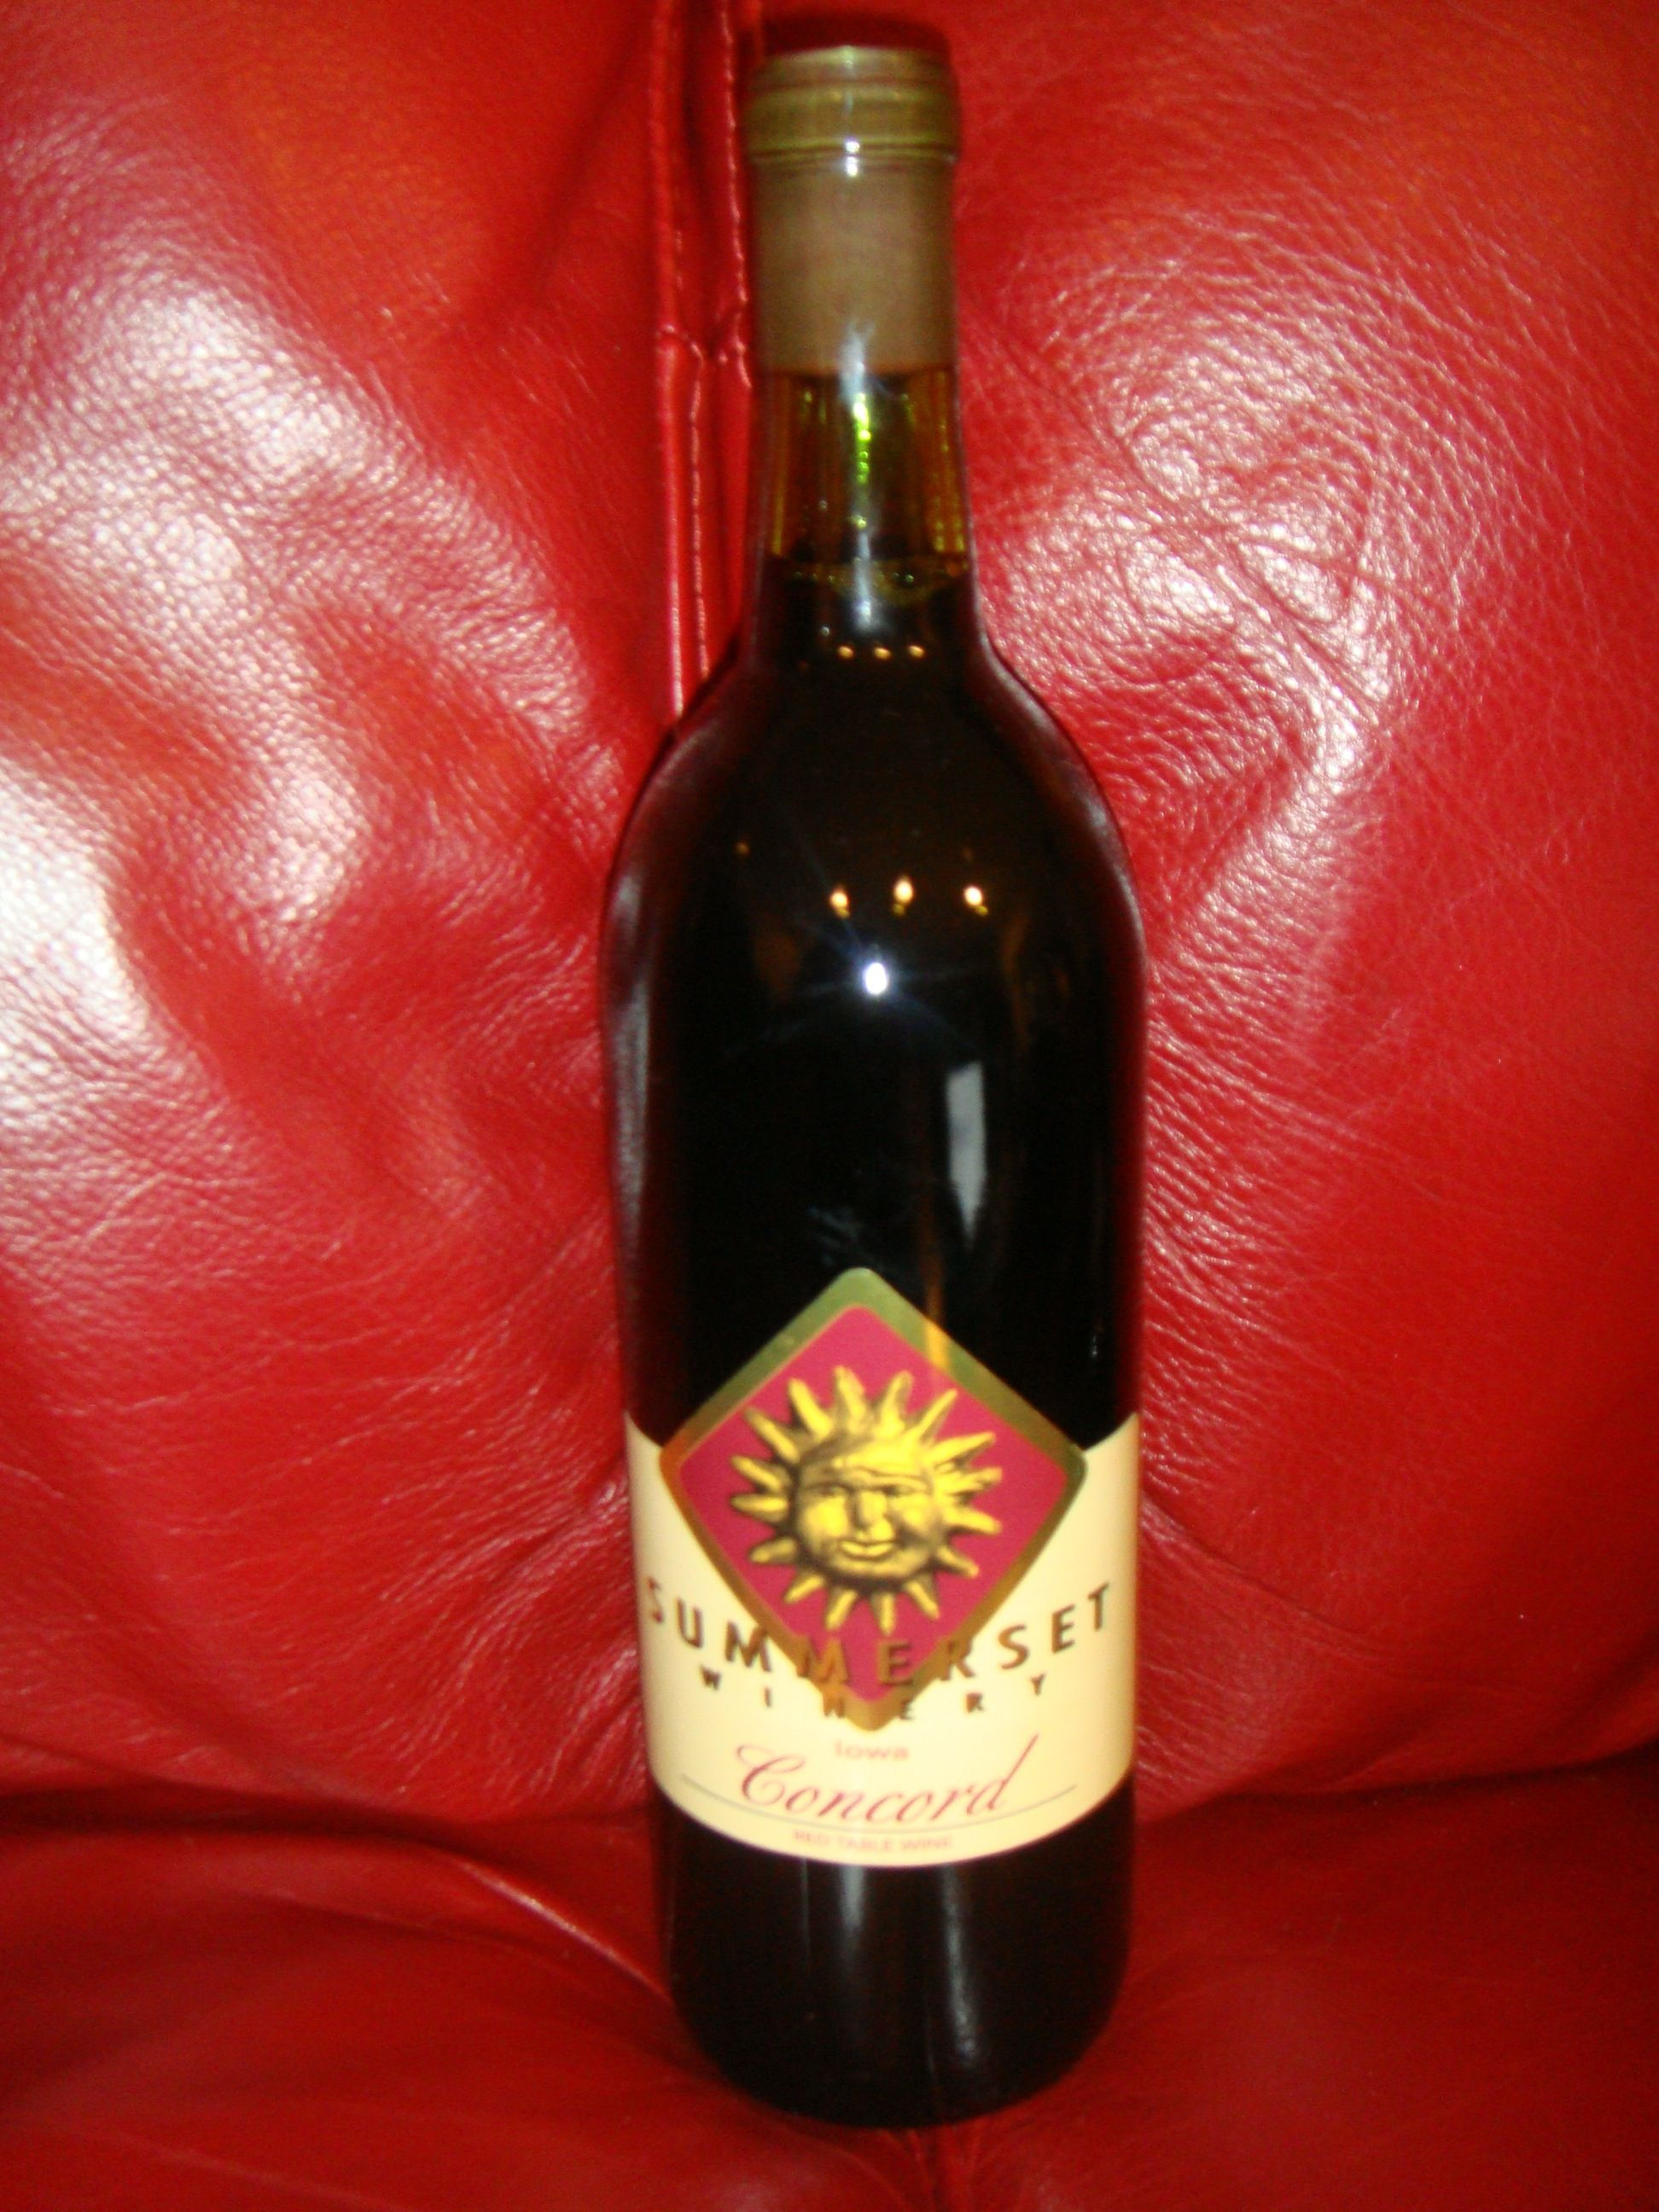 Concord Red Table Wine By Summmerset Winery Wine Bottle Red Wine Distillery